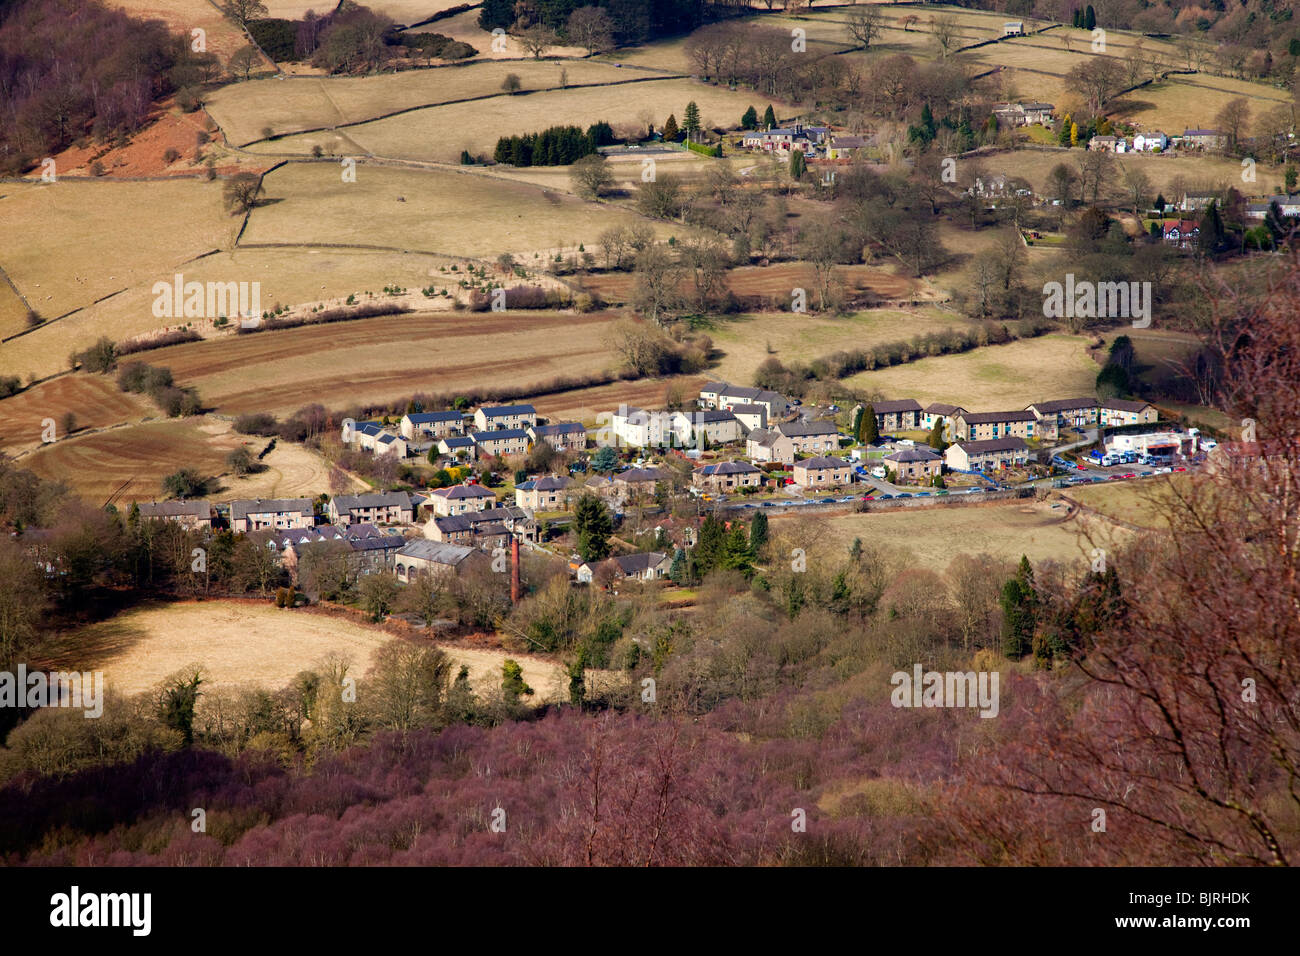 Village of Grindleford in the Peak District Derbyshire East Midlands England UK - Stock Image